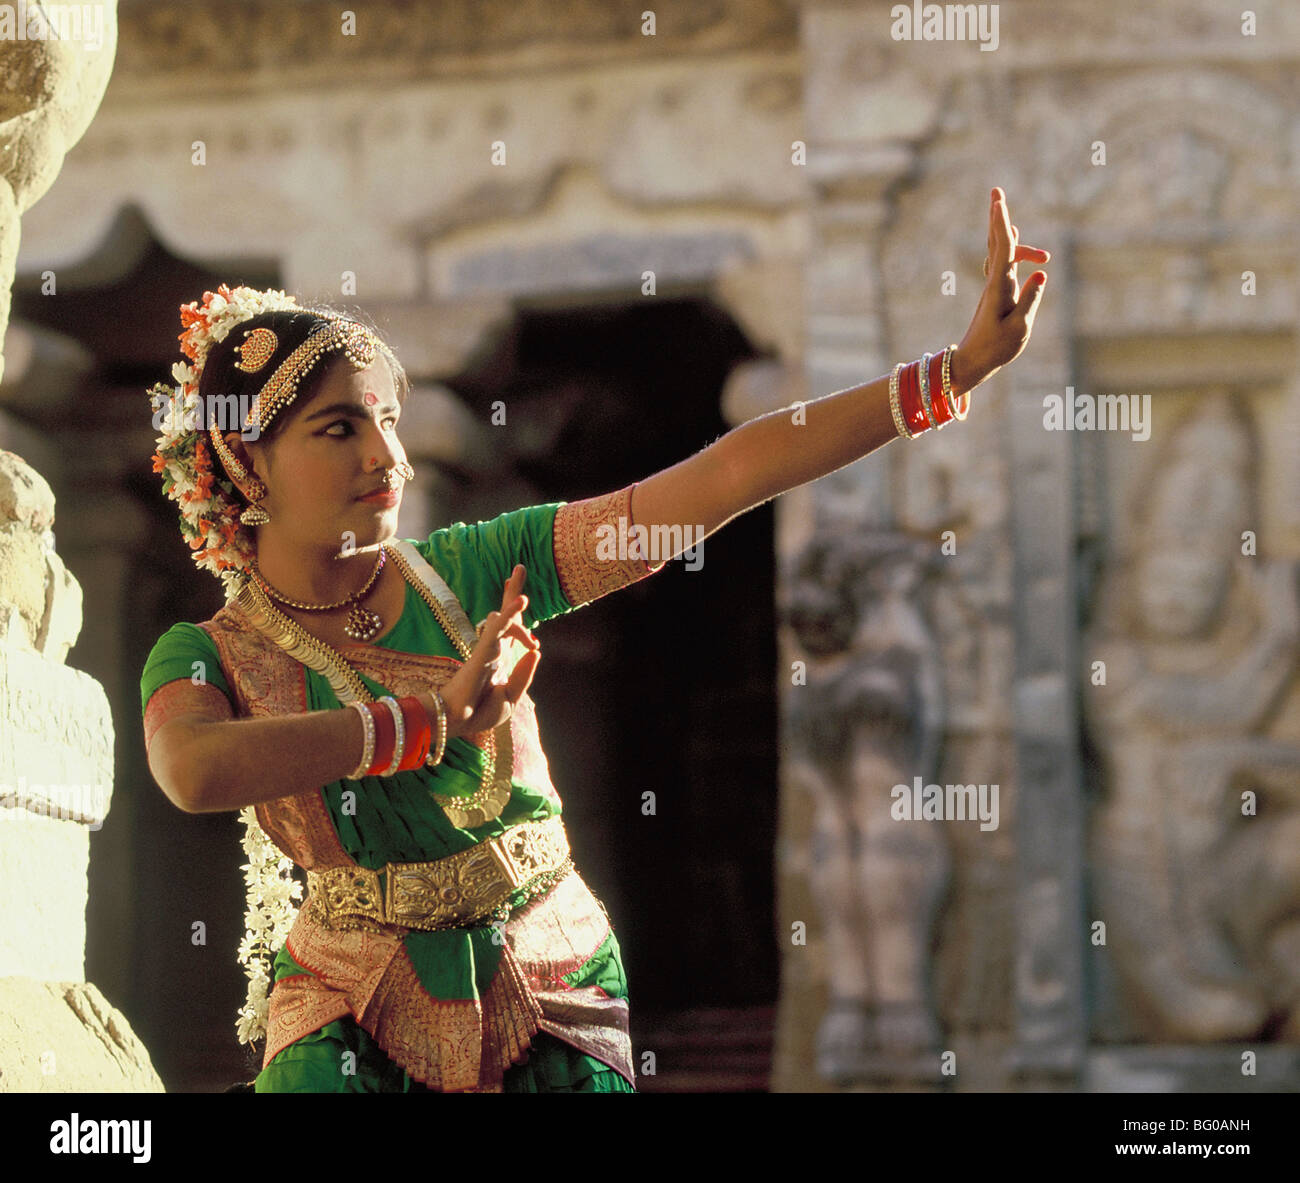 Bharatanatyam, popular South Indian dance, Kanchipuram, Tamil Nadu, India, Asia - Stock Image